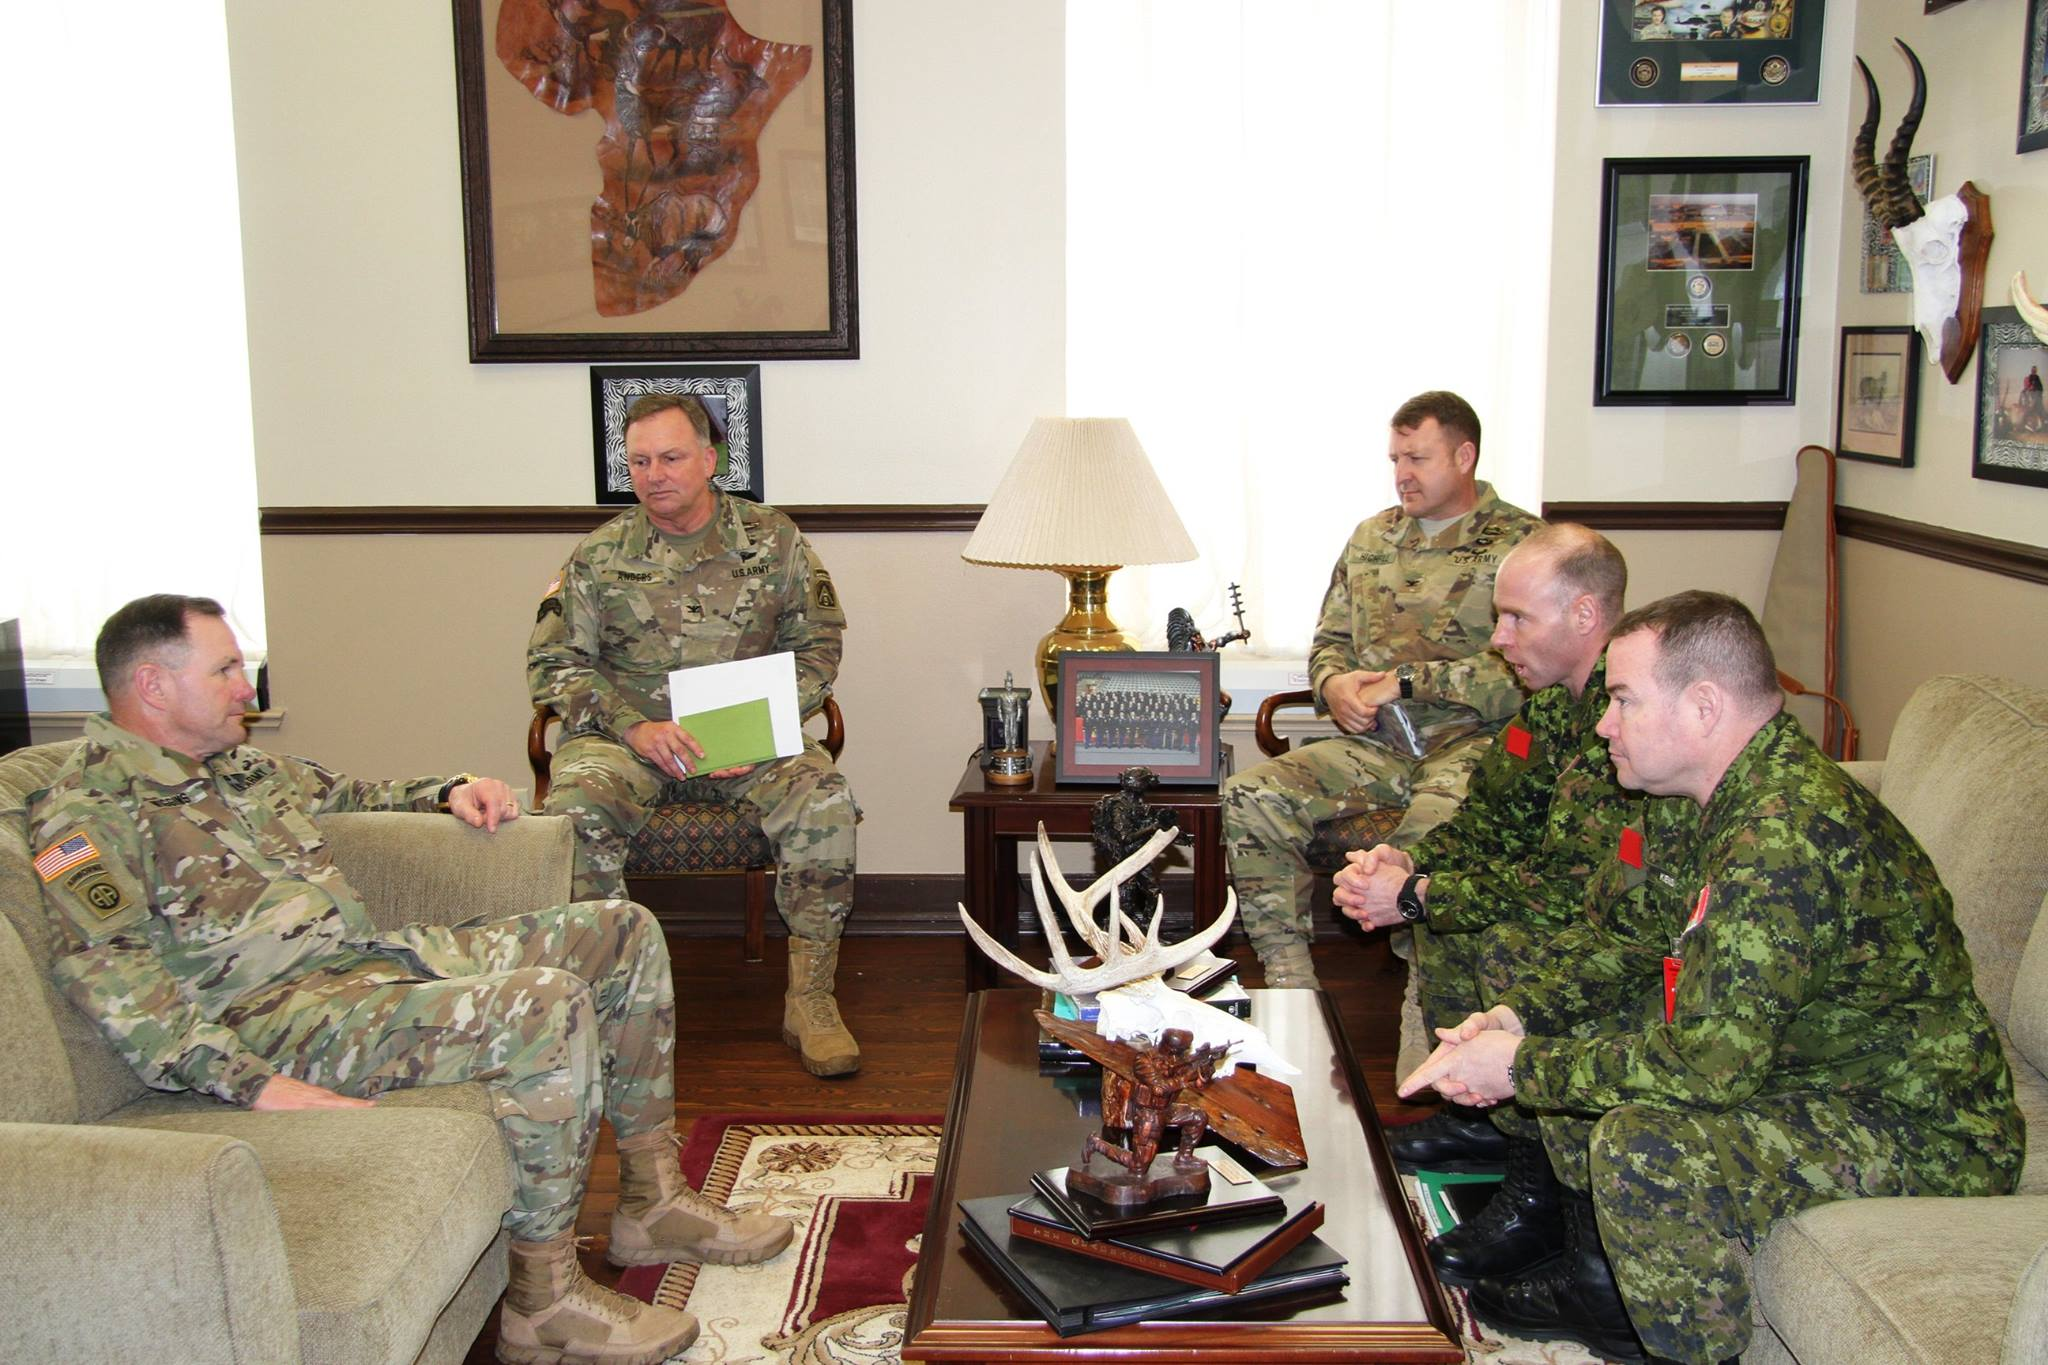 U.S. & Canadian Armed Forces, Partners in Defense